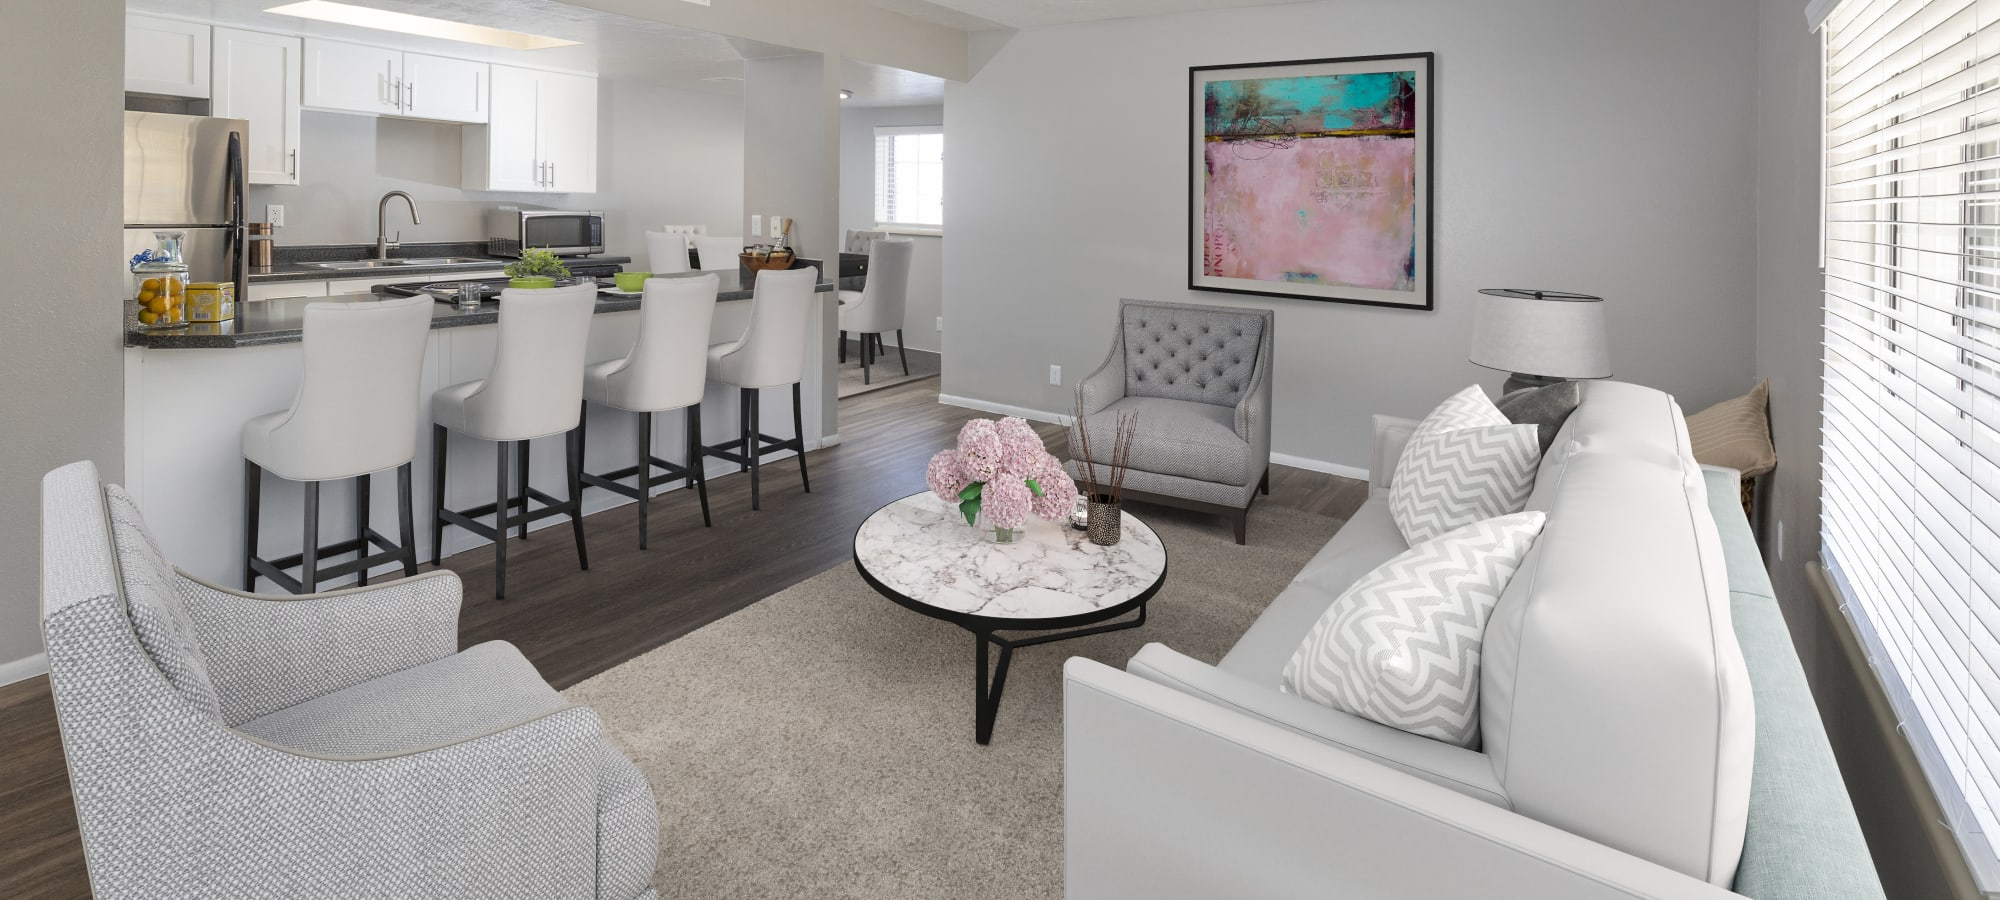 Bountiful, Utah apartments at Windgate Apartments